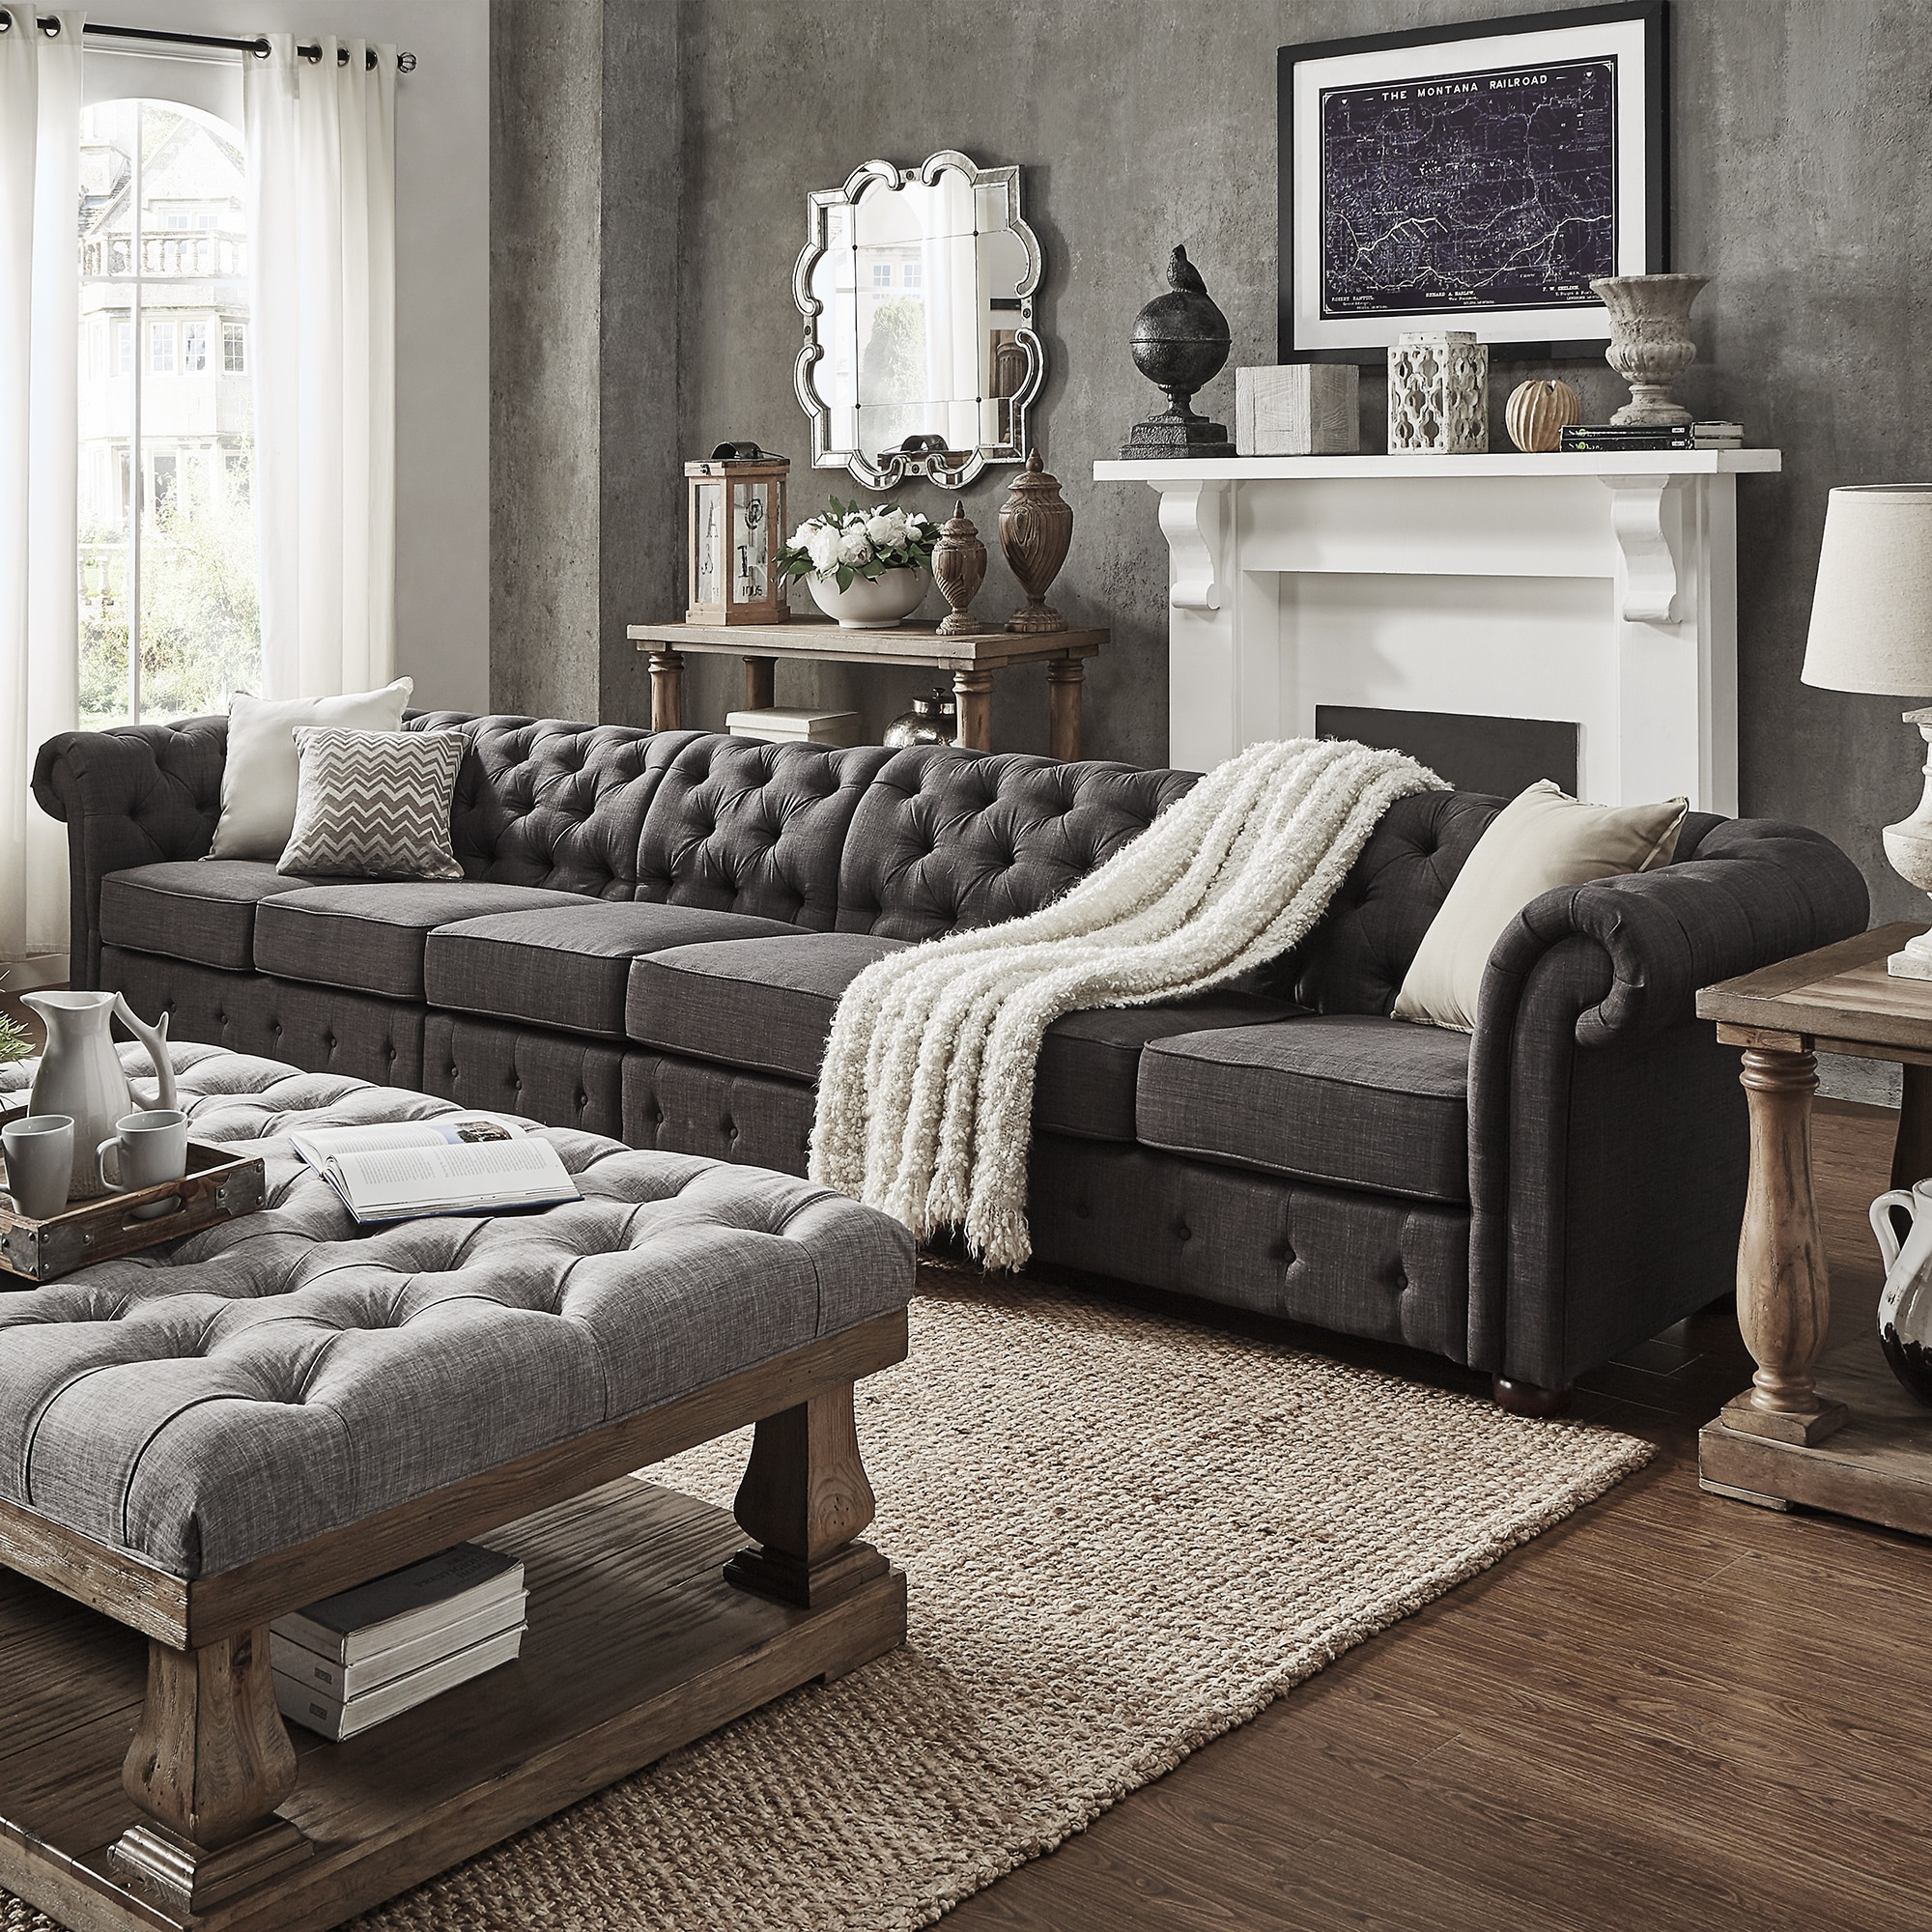 Chesterfield Lounge Knightsbridge Dark Grey Extra Long Tufted Chesterfield Sofa By Inspire Q Artisan